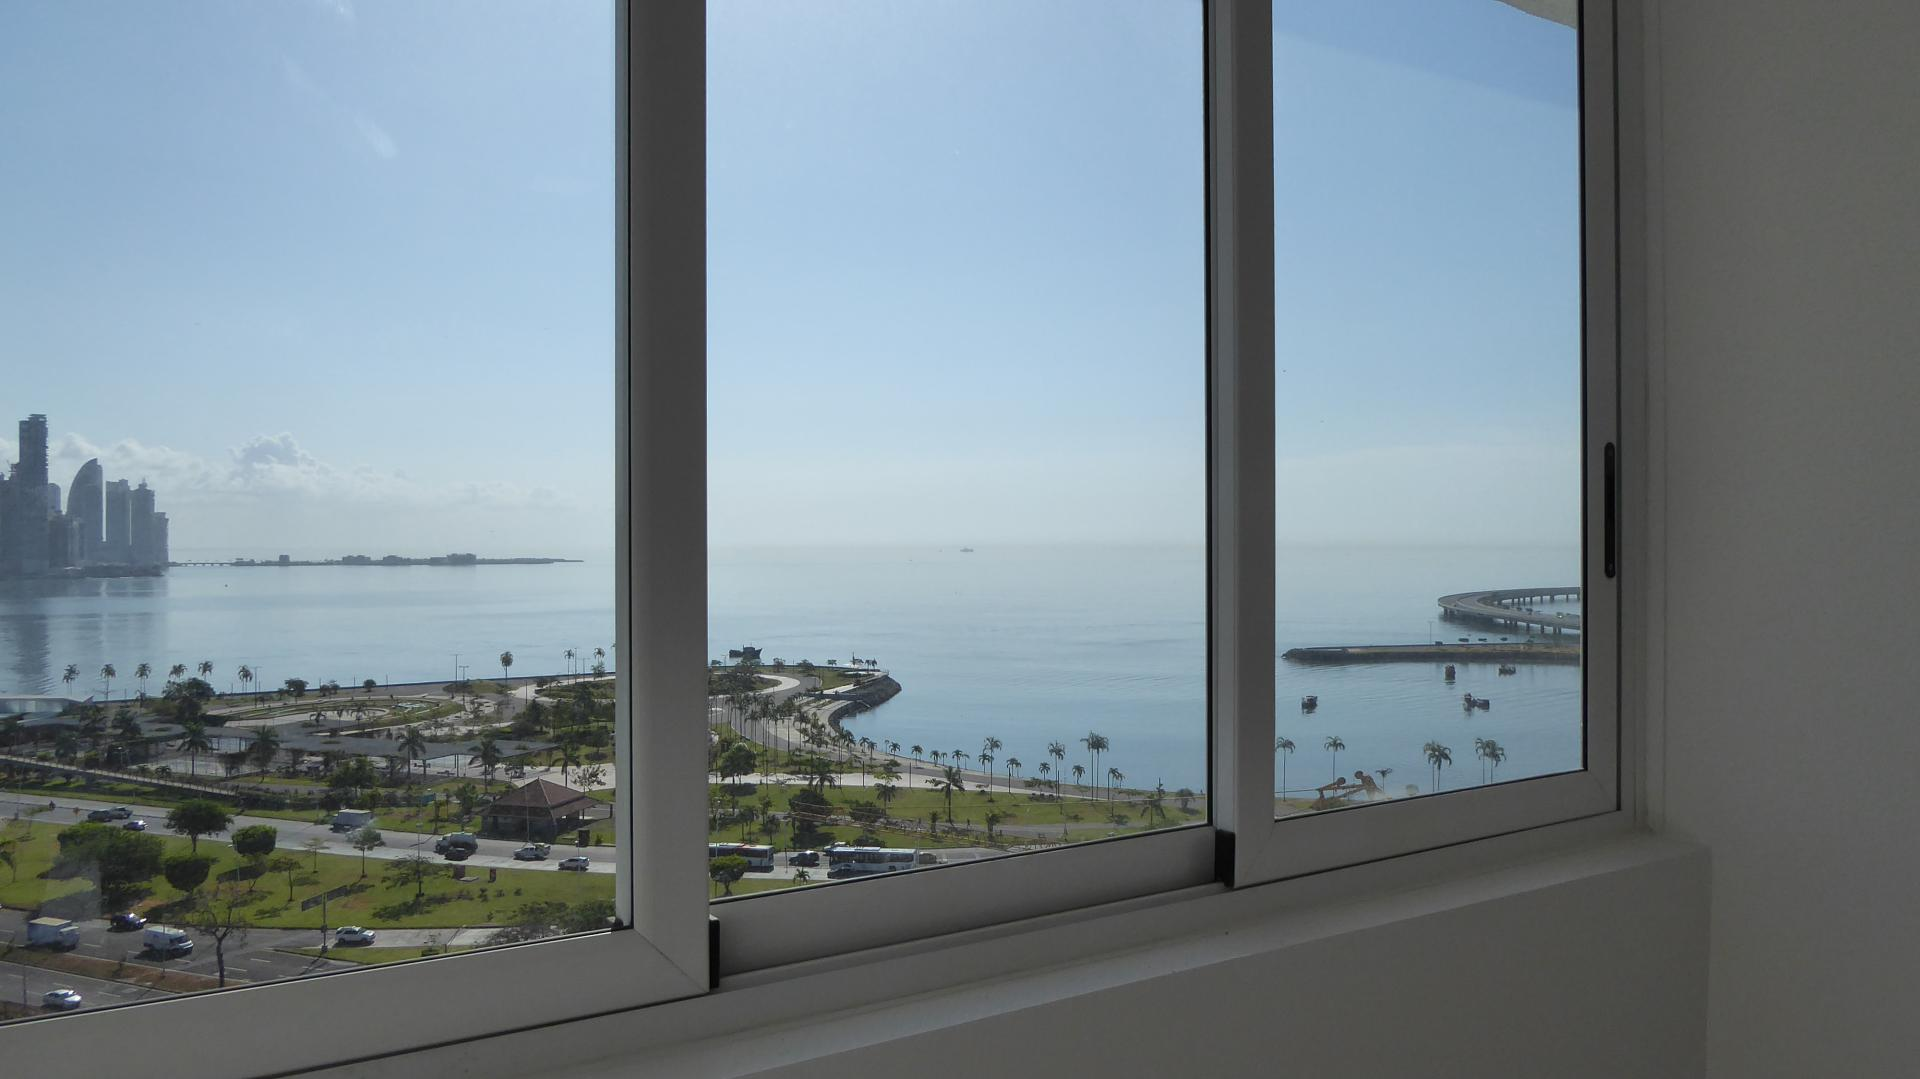 PANAMA CITY AVENIDA BALBOA BAY VIEW 2 BDRM HIGH FLOOR